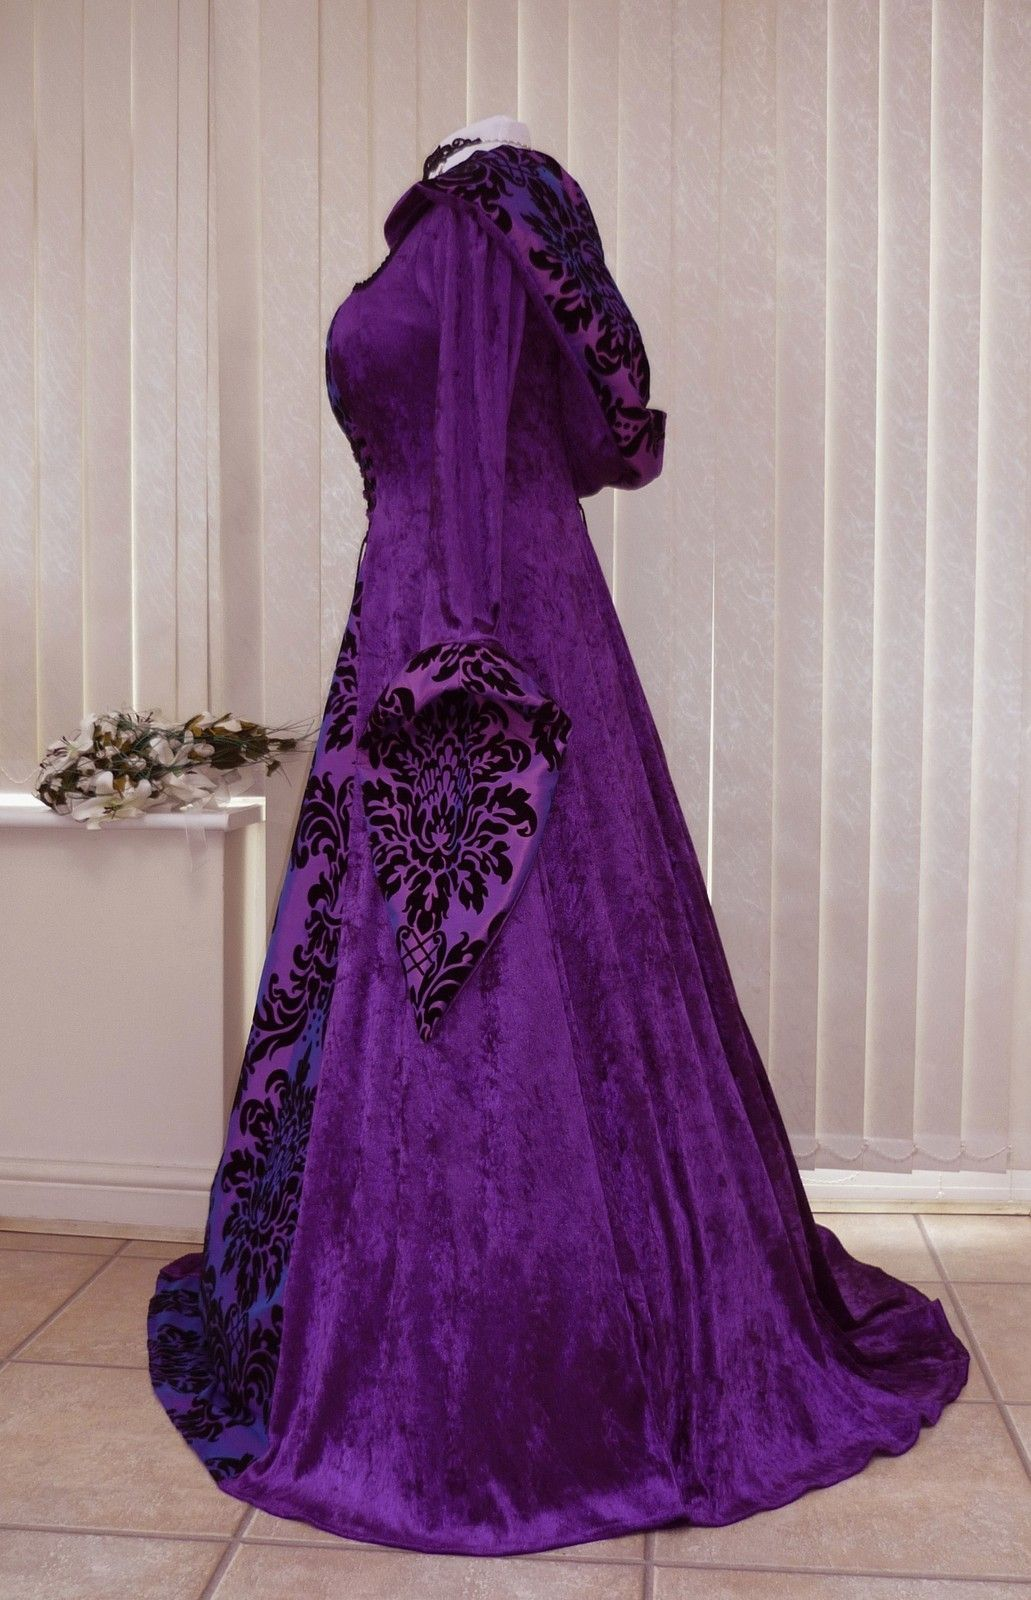 wiccan wedding dress Purple Gothic Whitby Medieval wedding dress hooded renaissance Pagan Wiccan